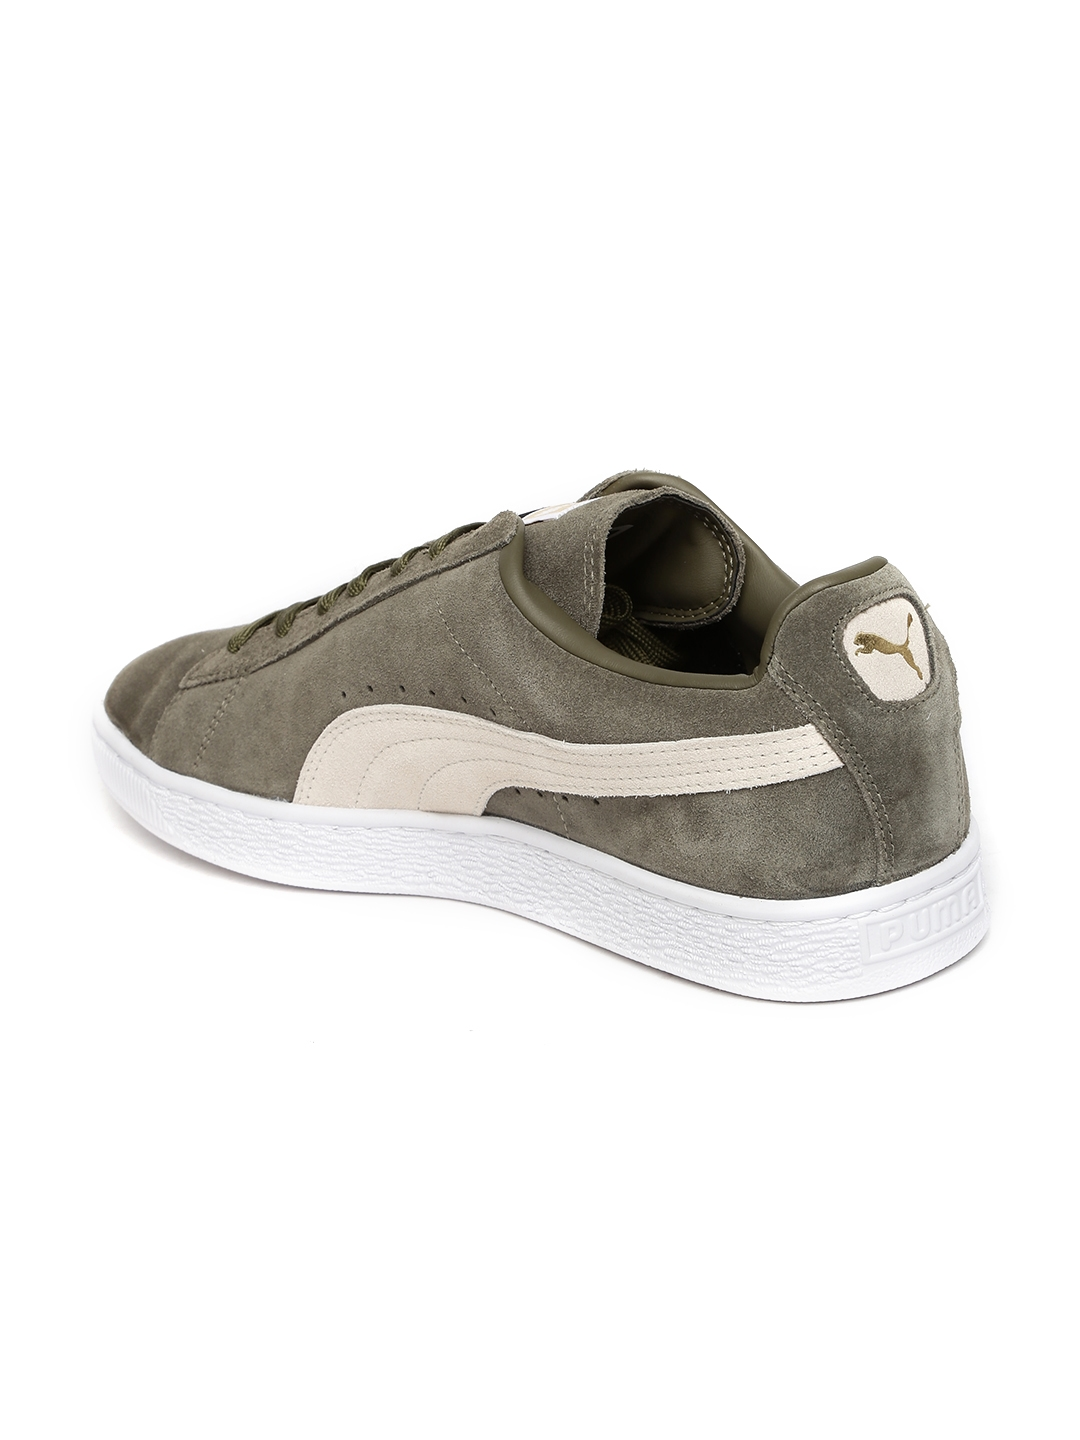 631d9fef549 Buy Puma Men Olive Green Suede Classic + Sneakers - Casual Shoes for ...